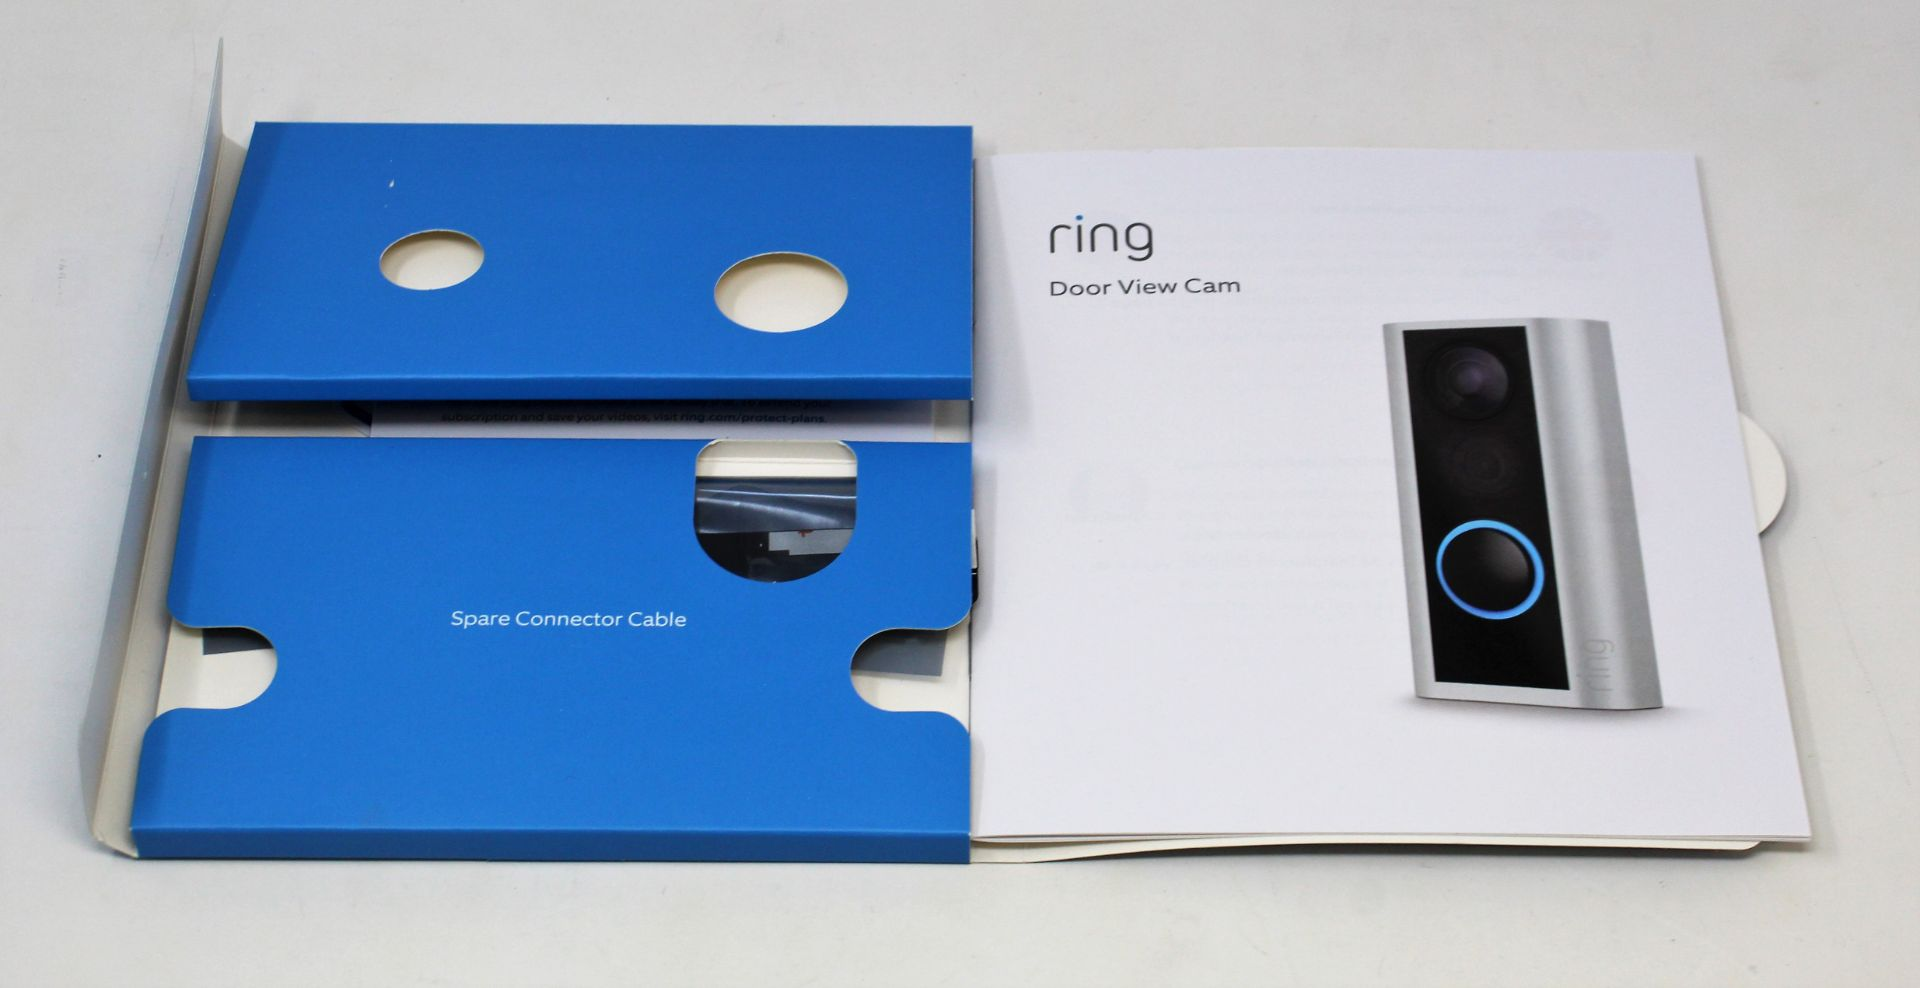 A boxed Ring Door View Cam in Silver (Appears as new. Damaged box). - Image 6 of 7